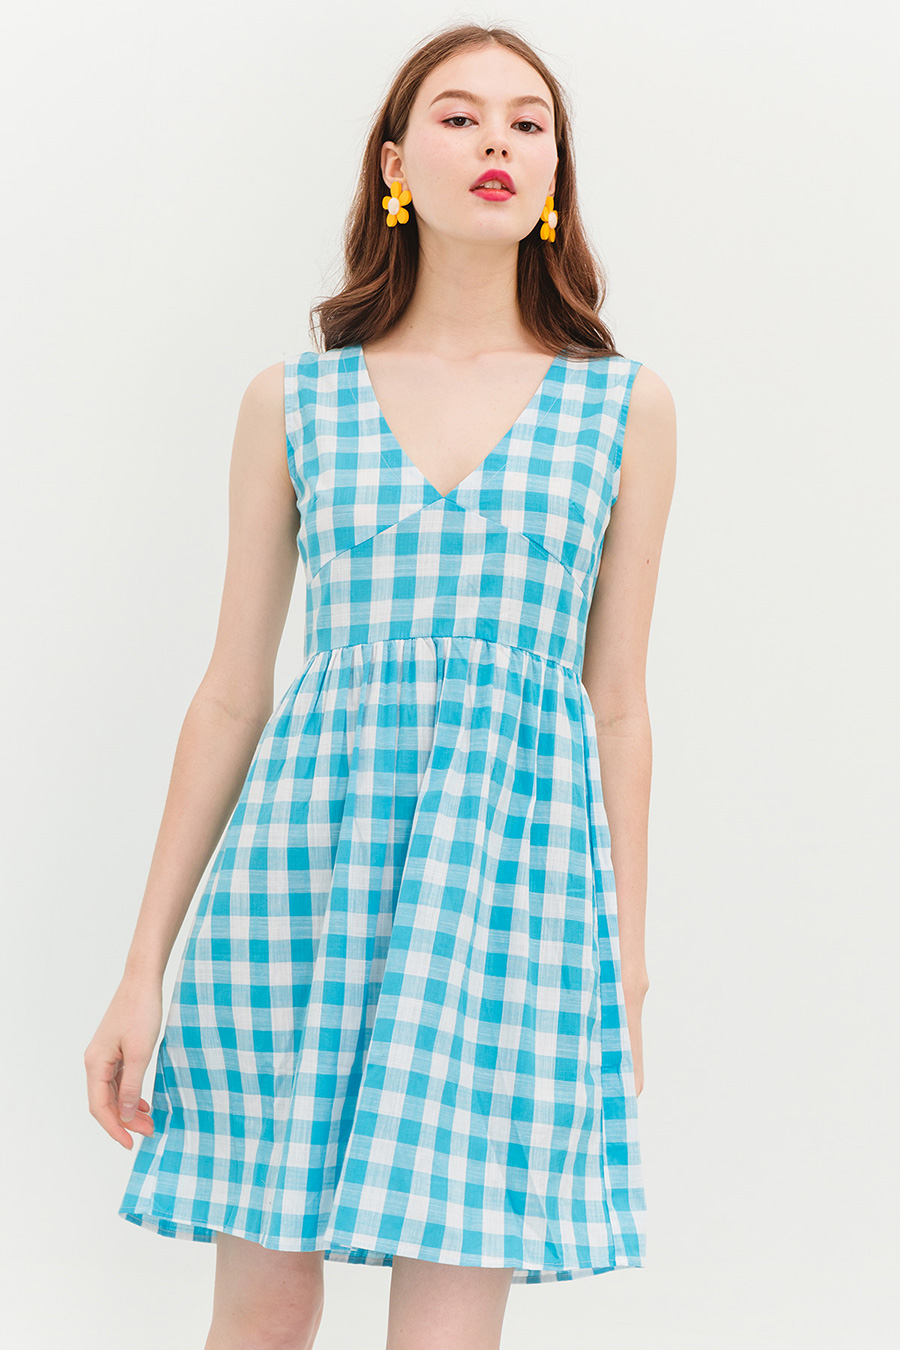 BUXTON DRESS - BLUEBERRY